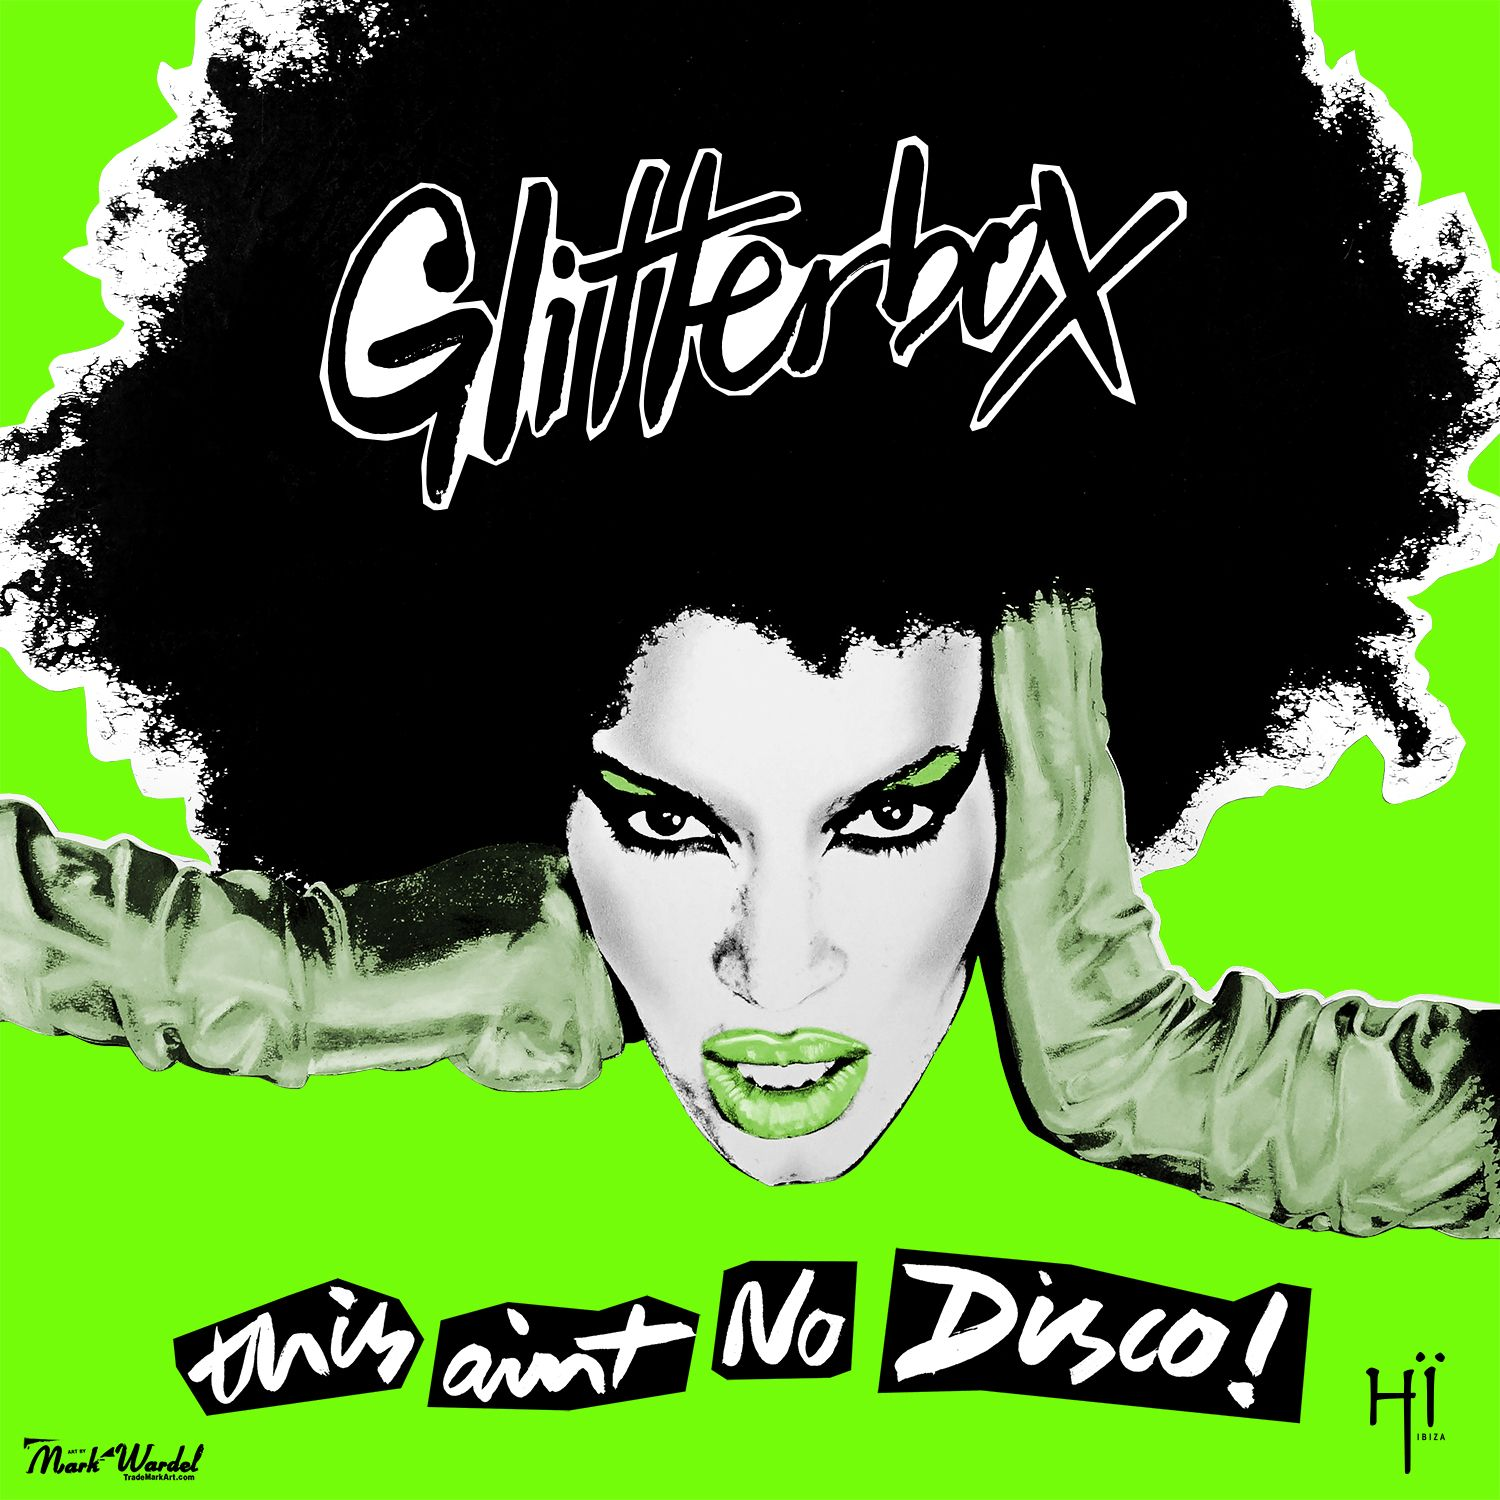 glitterbox_this_aint_no_disco_1500x1500.jpg